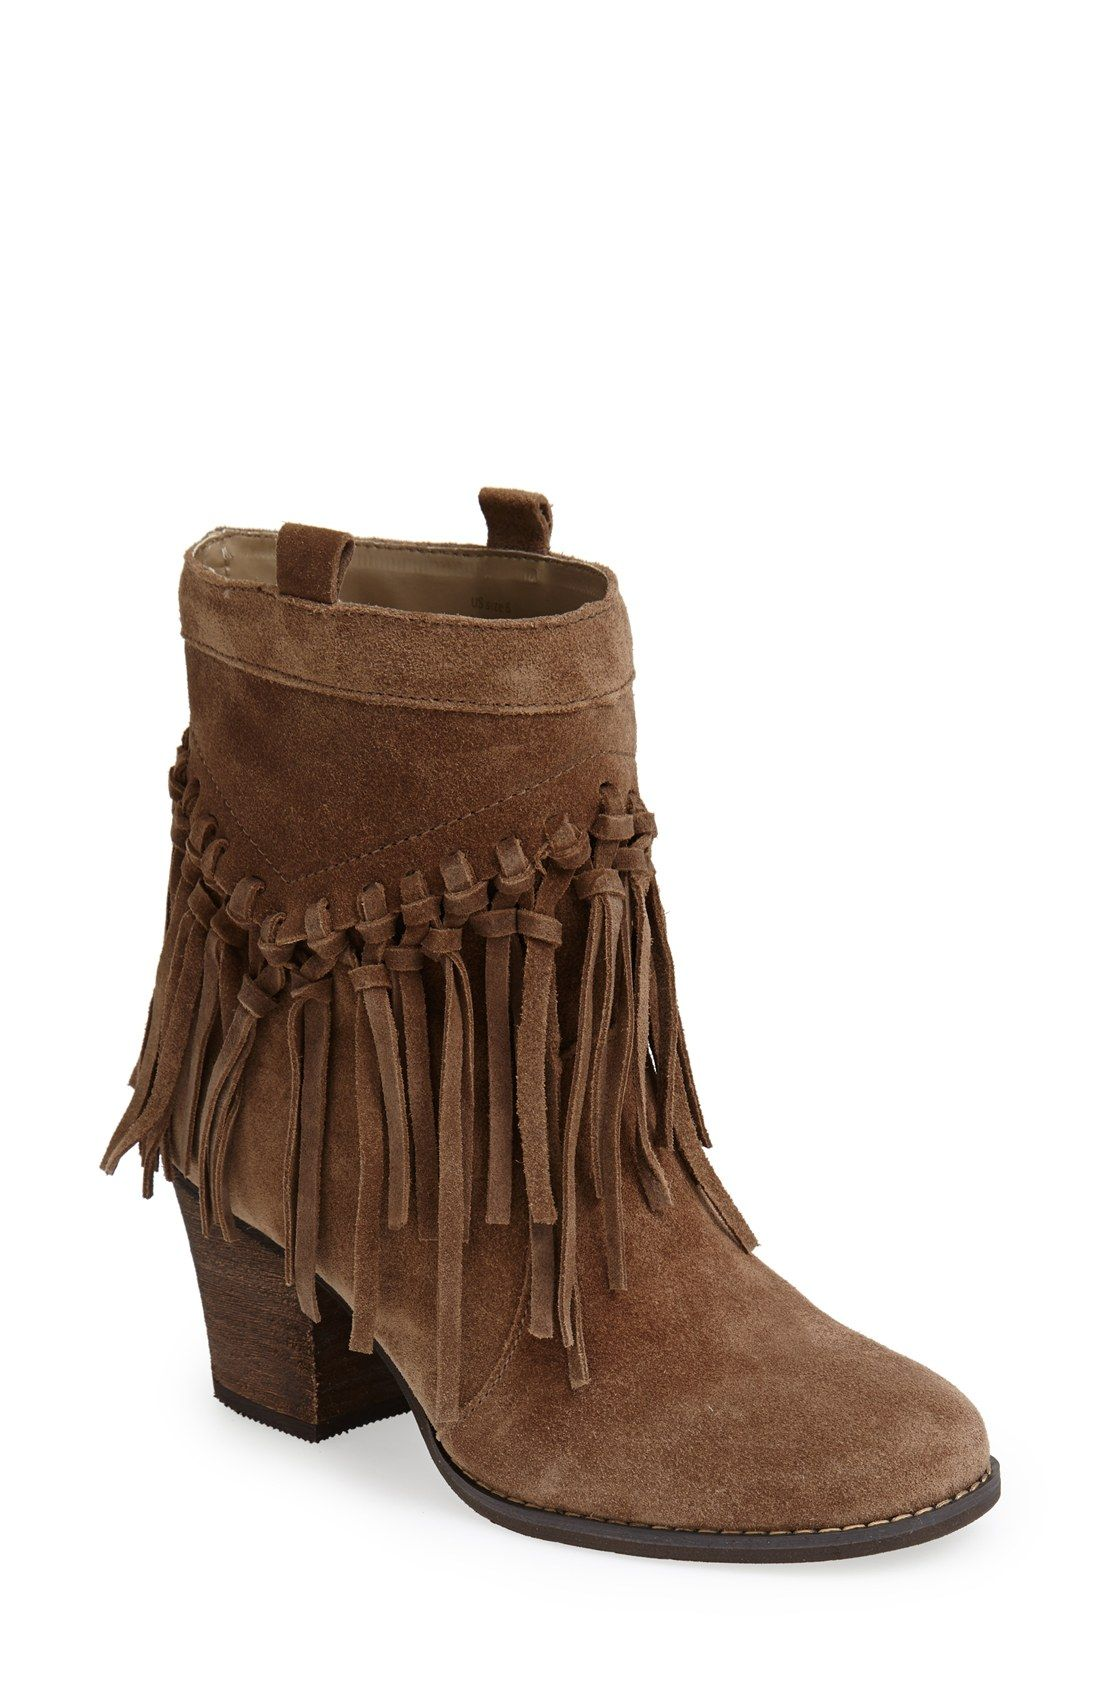 e6384a6cd Sbicca 'Sound' Fringe Suede Bootie (Women) - Size 8 | Lissa's Wish ...